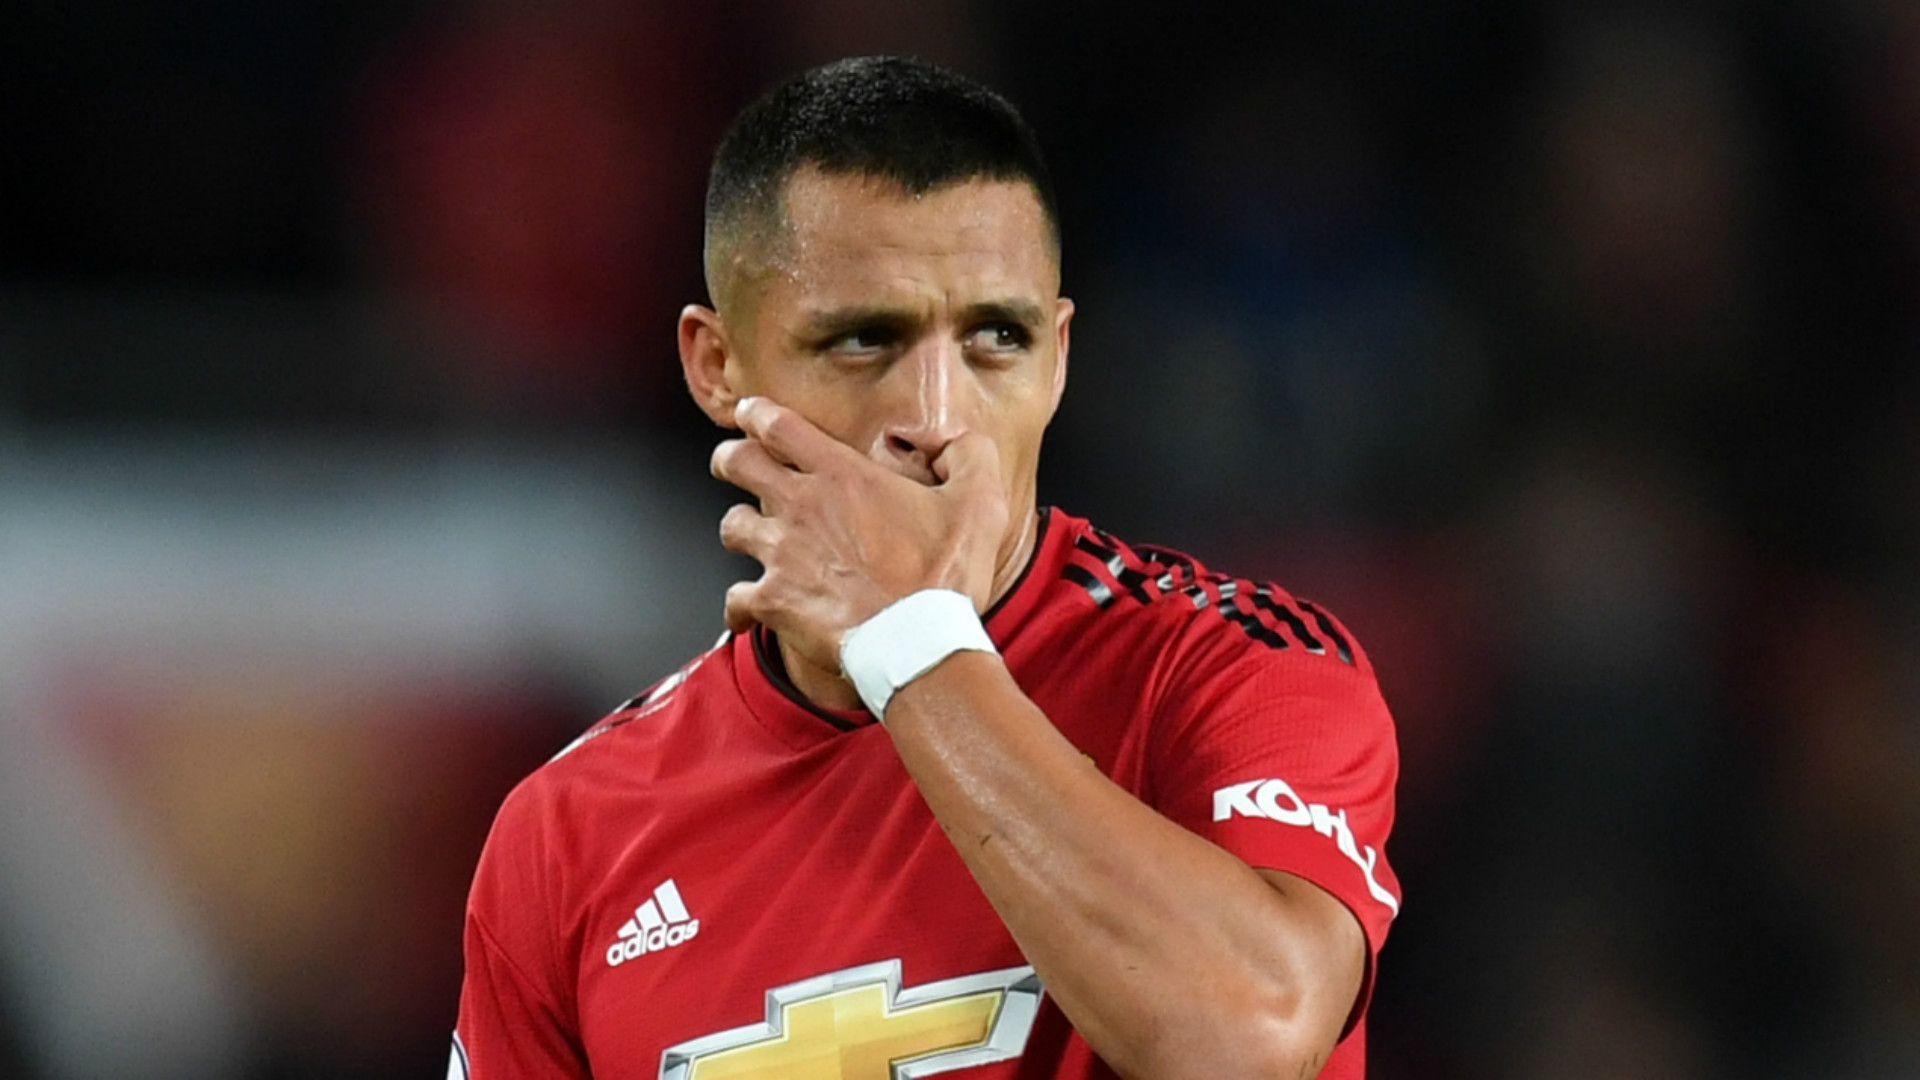 'Maybe he saw a ghost!' – Ex-Man Utd winger Sanchez mocked by Rafael as he claims he 'played so bad every time'